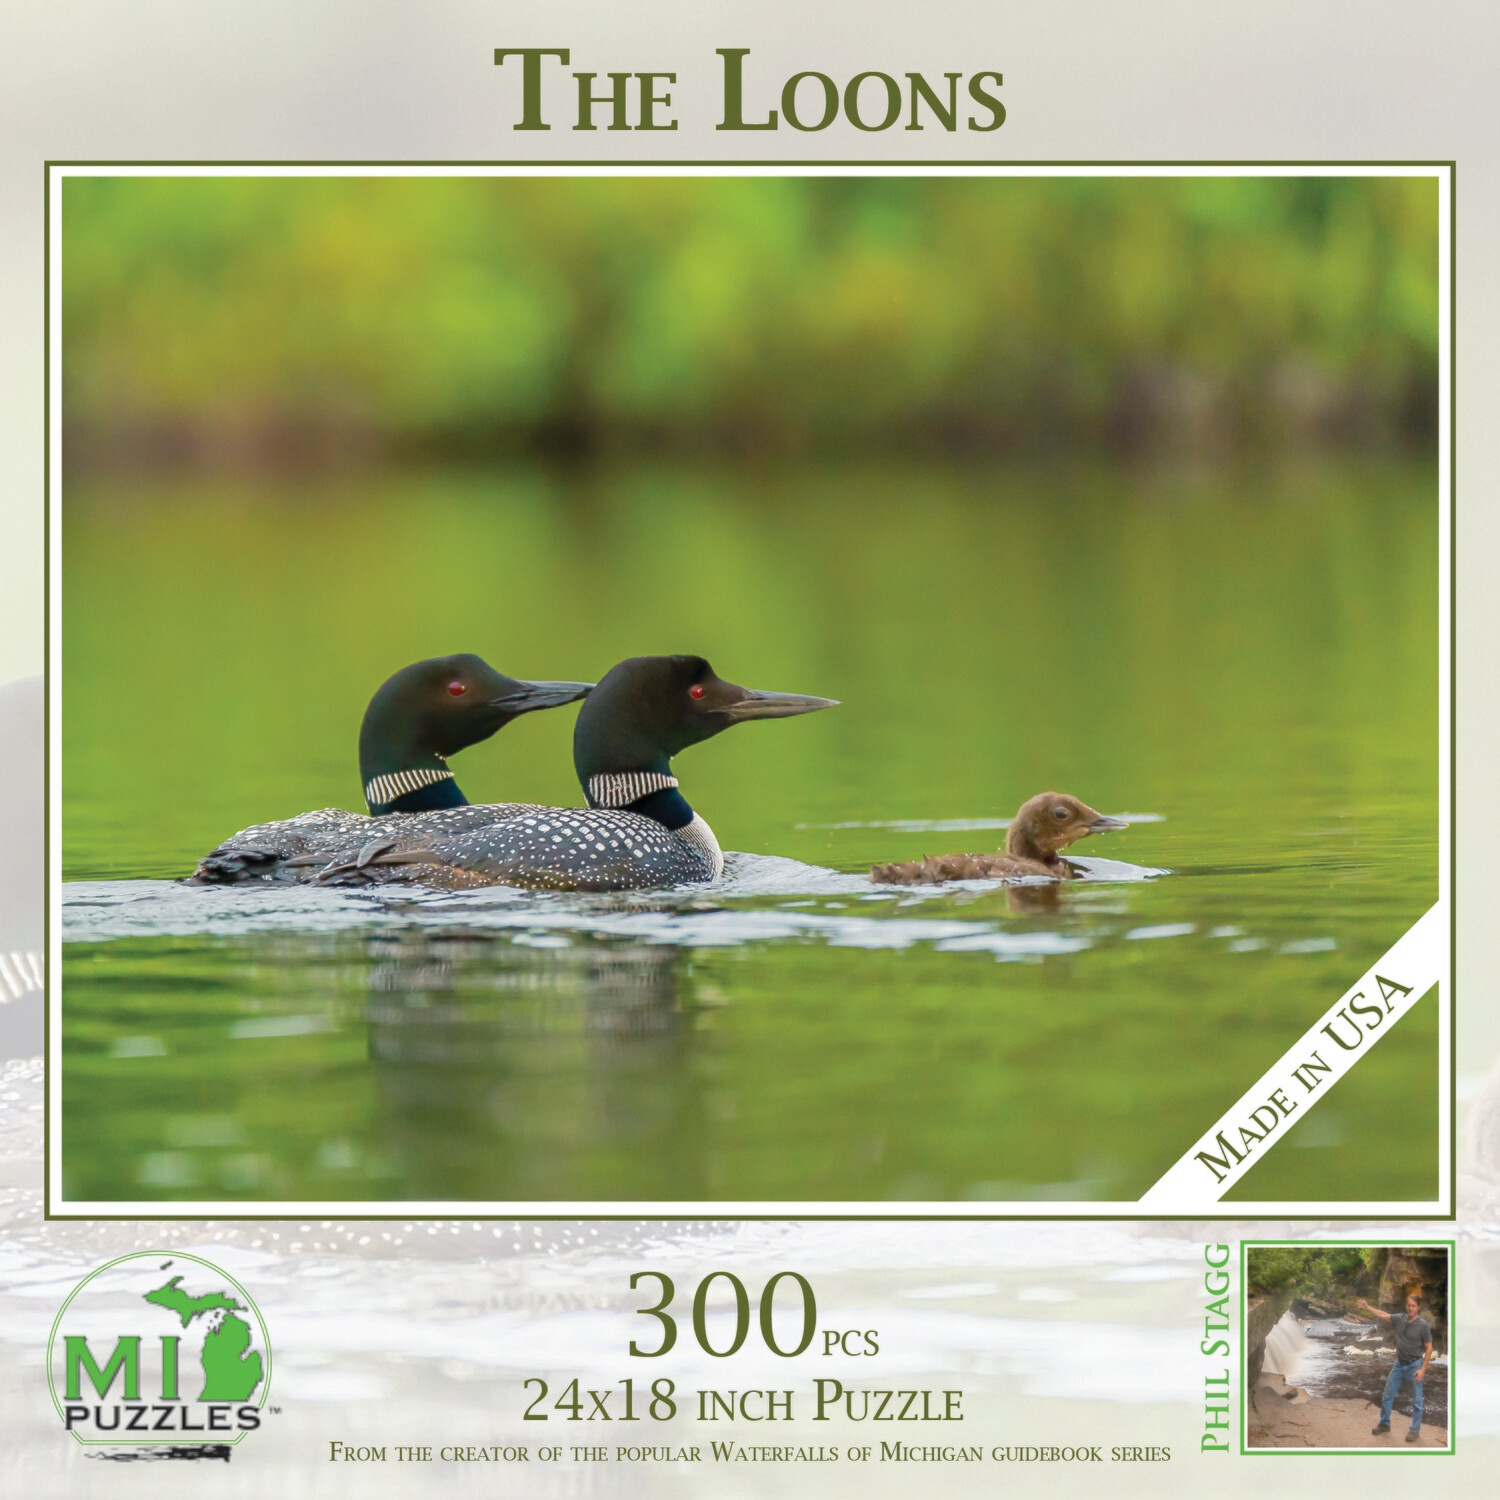 The Loons